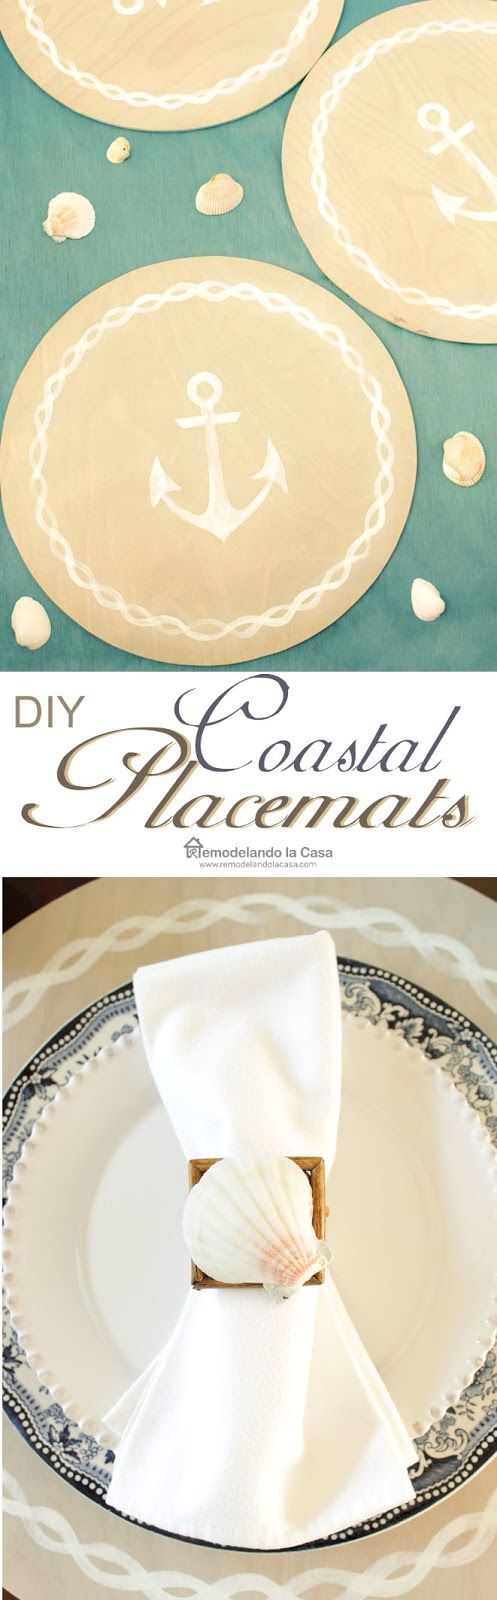 Costal Decor - DIY - Placemats